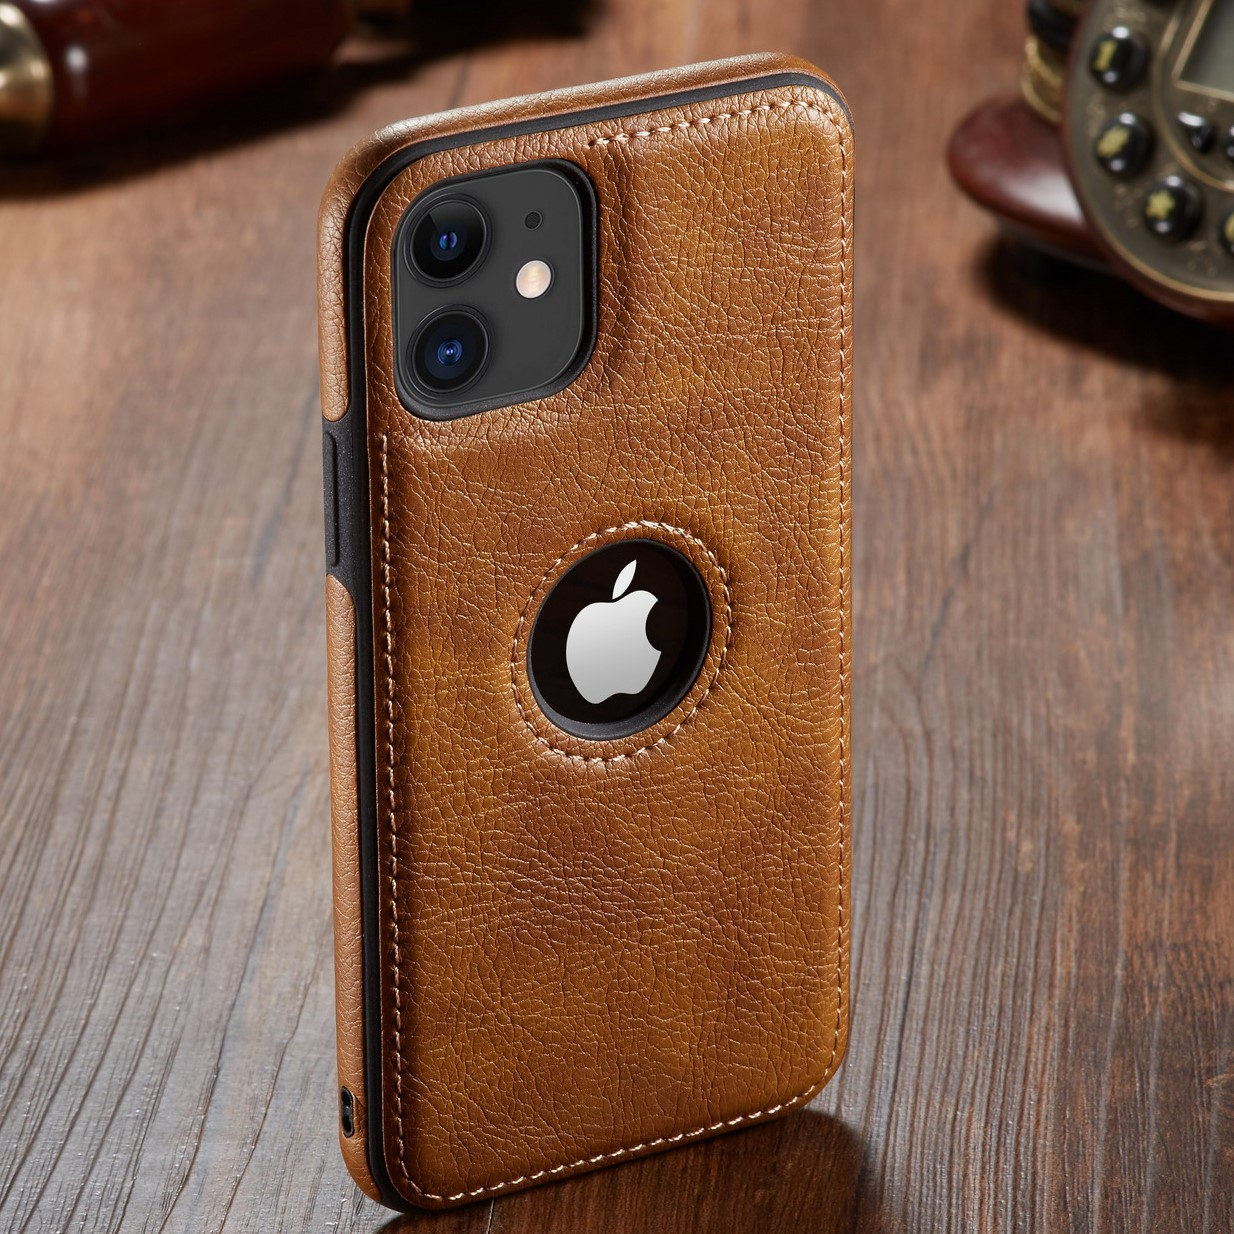 Voor Iphone 11 11 Pro 11 Pro Max Case Luxe Leather Stiksels Case Cover Voor Iphone 12 Pro Max xr X 8 7 6 6S Plus Case 6